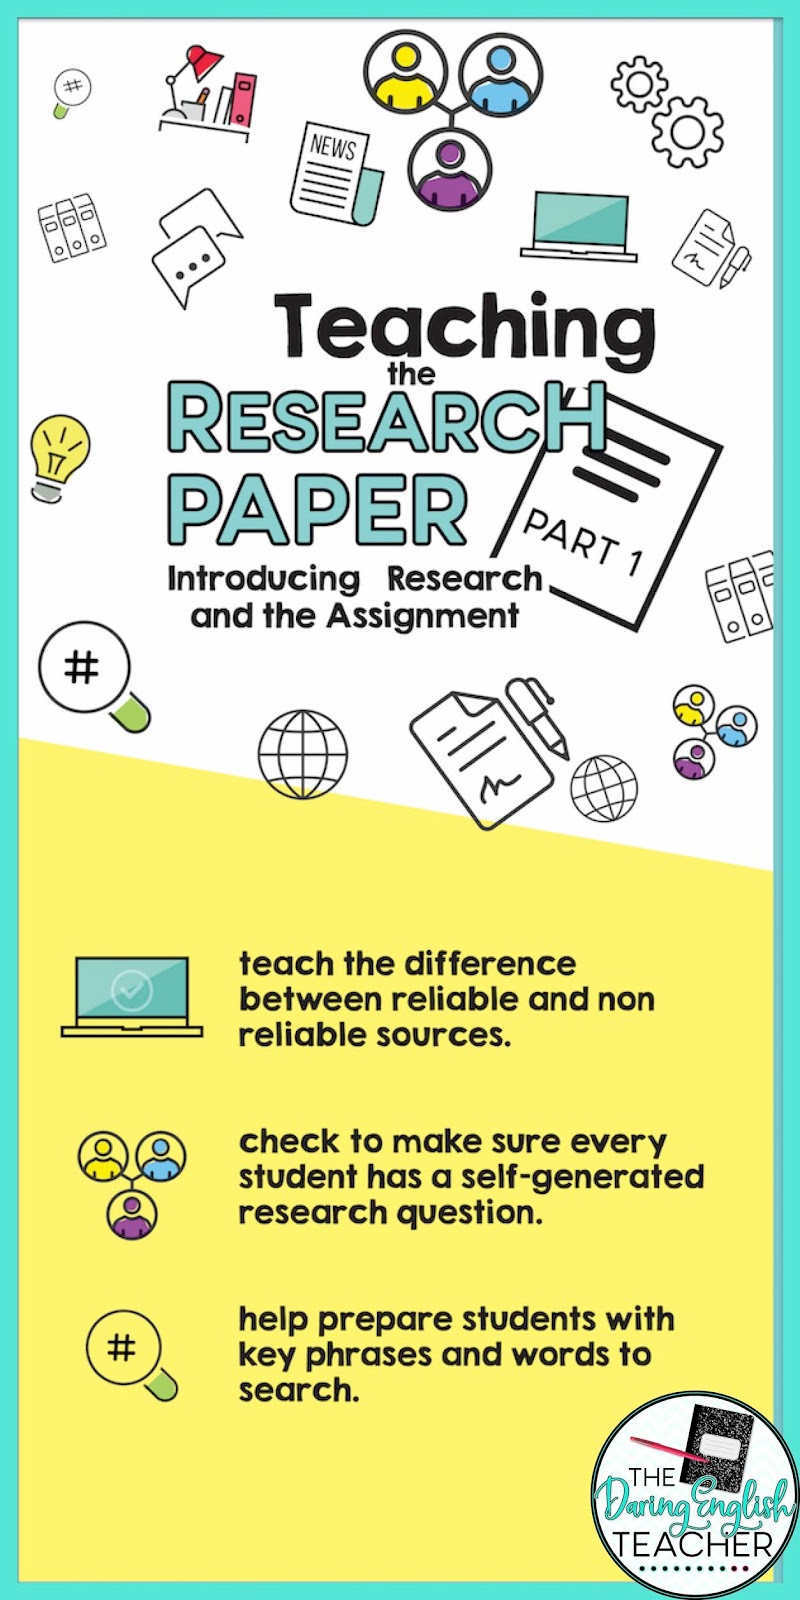 Teaching the Research Paper Part 1: Introducing the Research Paper ...